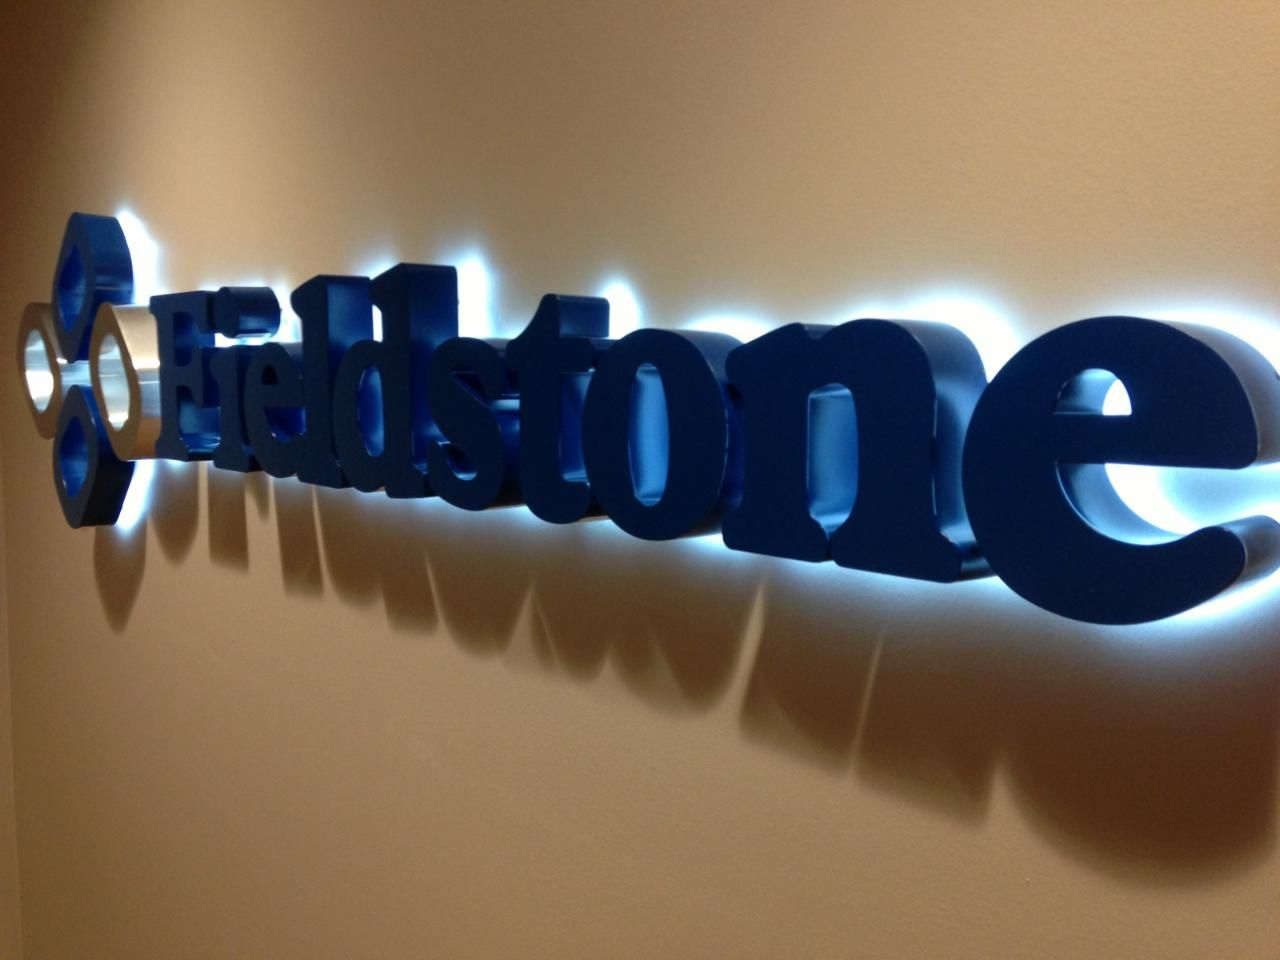 Halo lit wall mounted channel letters 11